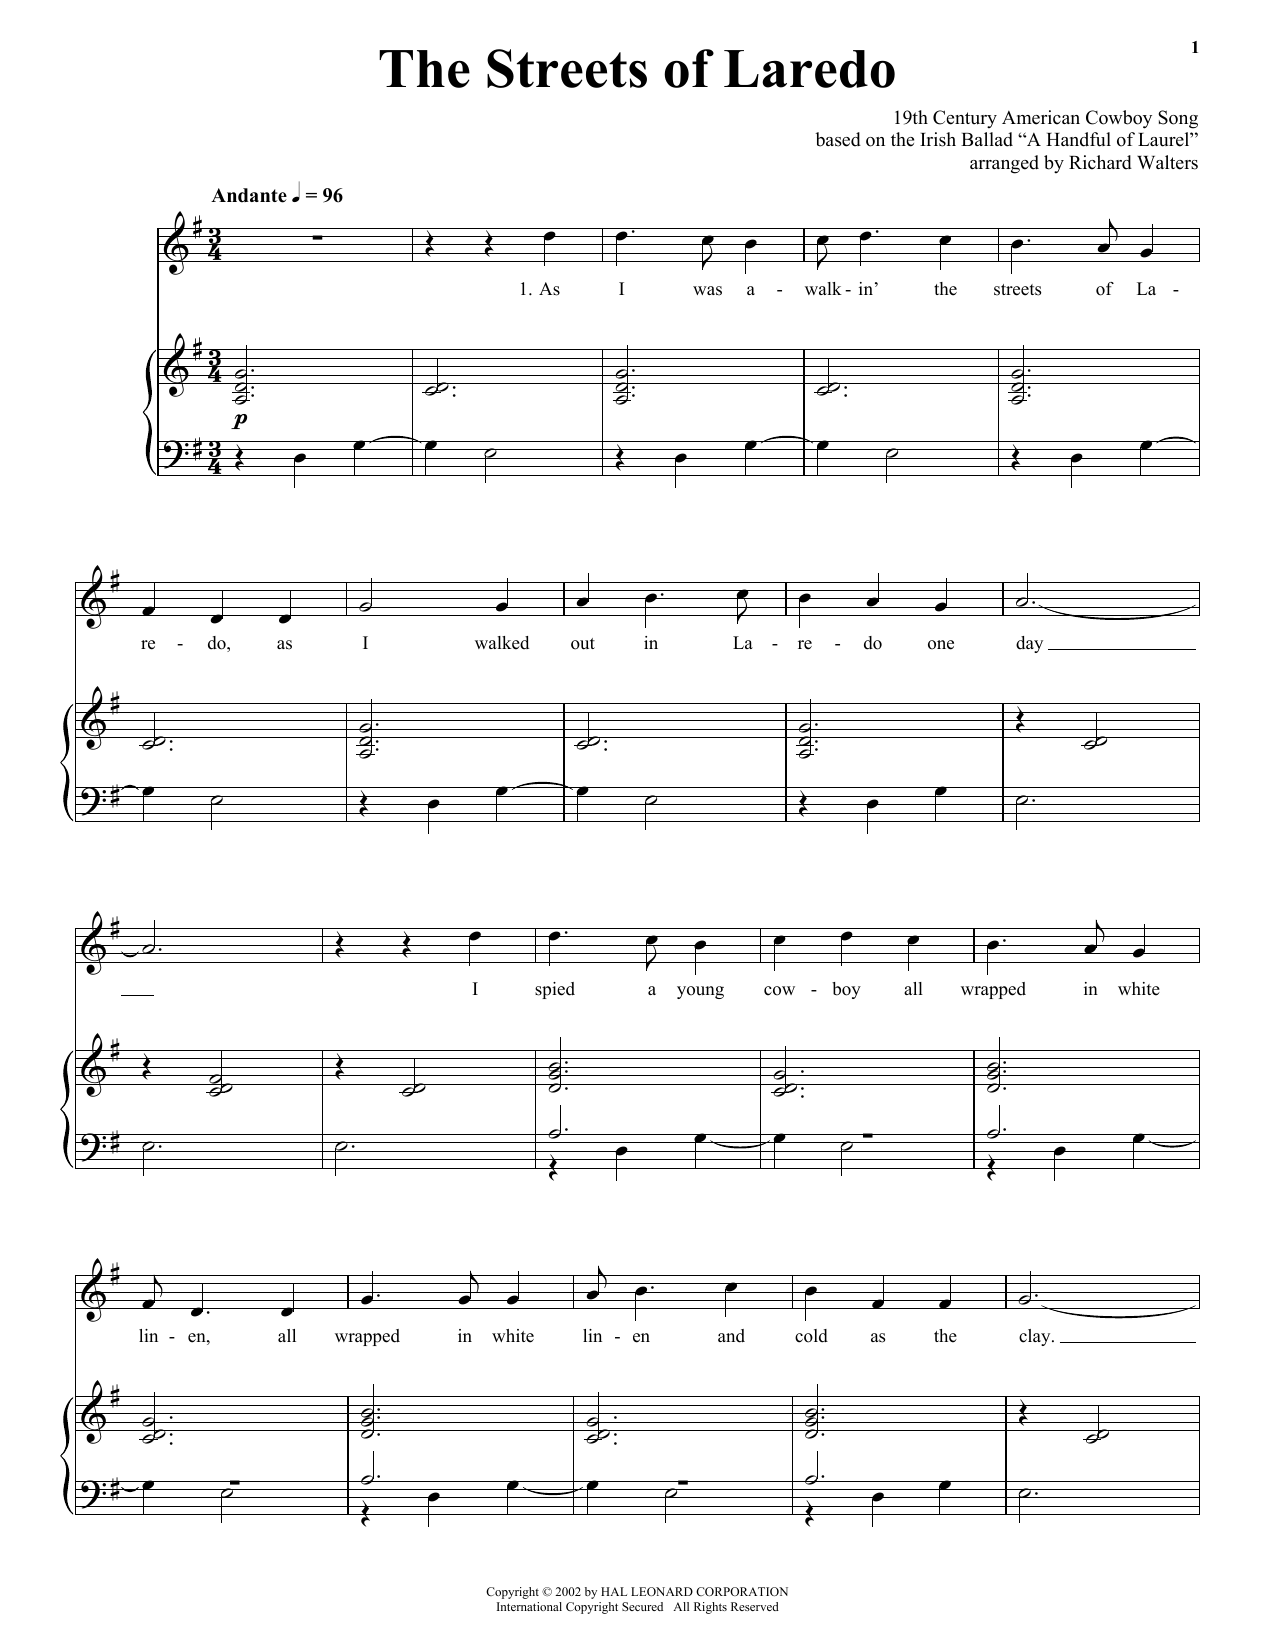 American Cowboy Song The Streets Of Laredo sheet music notes and chords. Download Printable PDF.